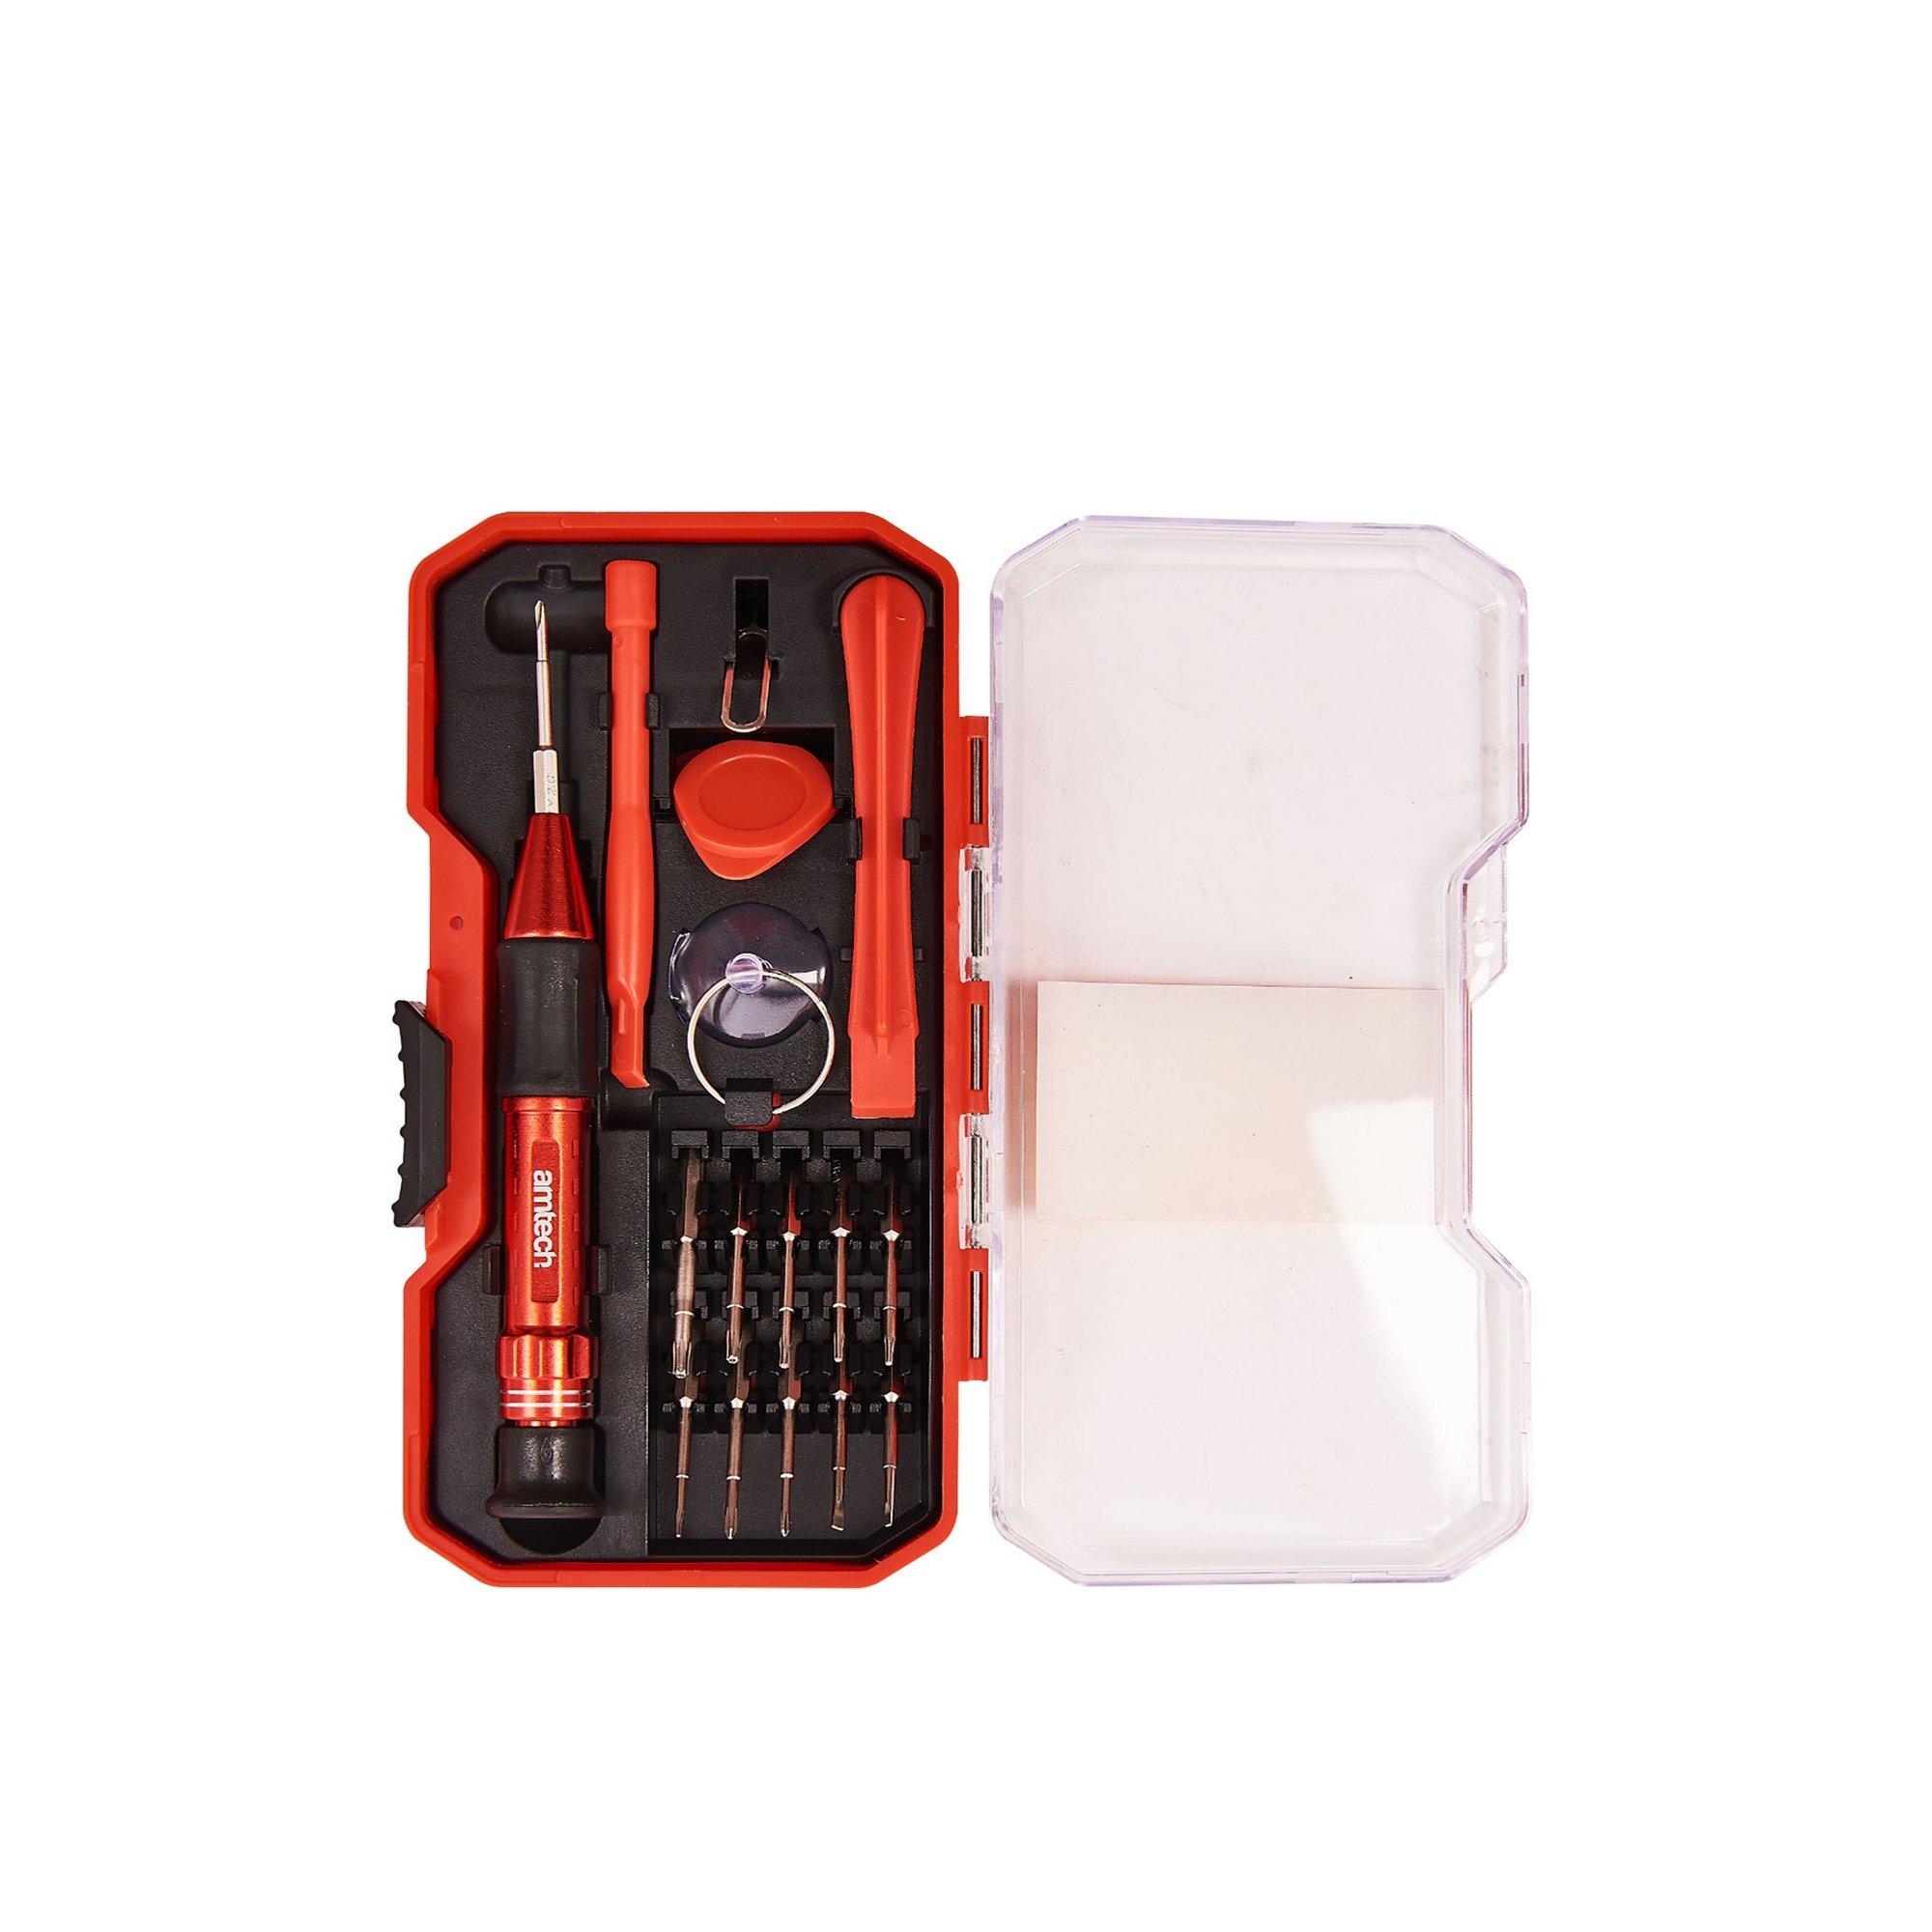 Image of 17 Piece Precision Phone and Computer Repair Tool Set